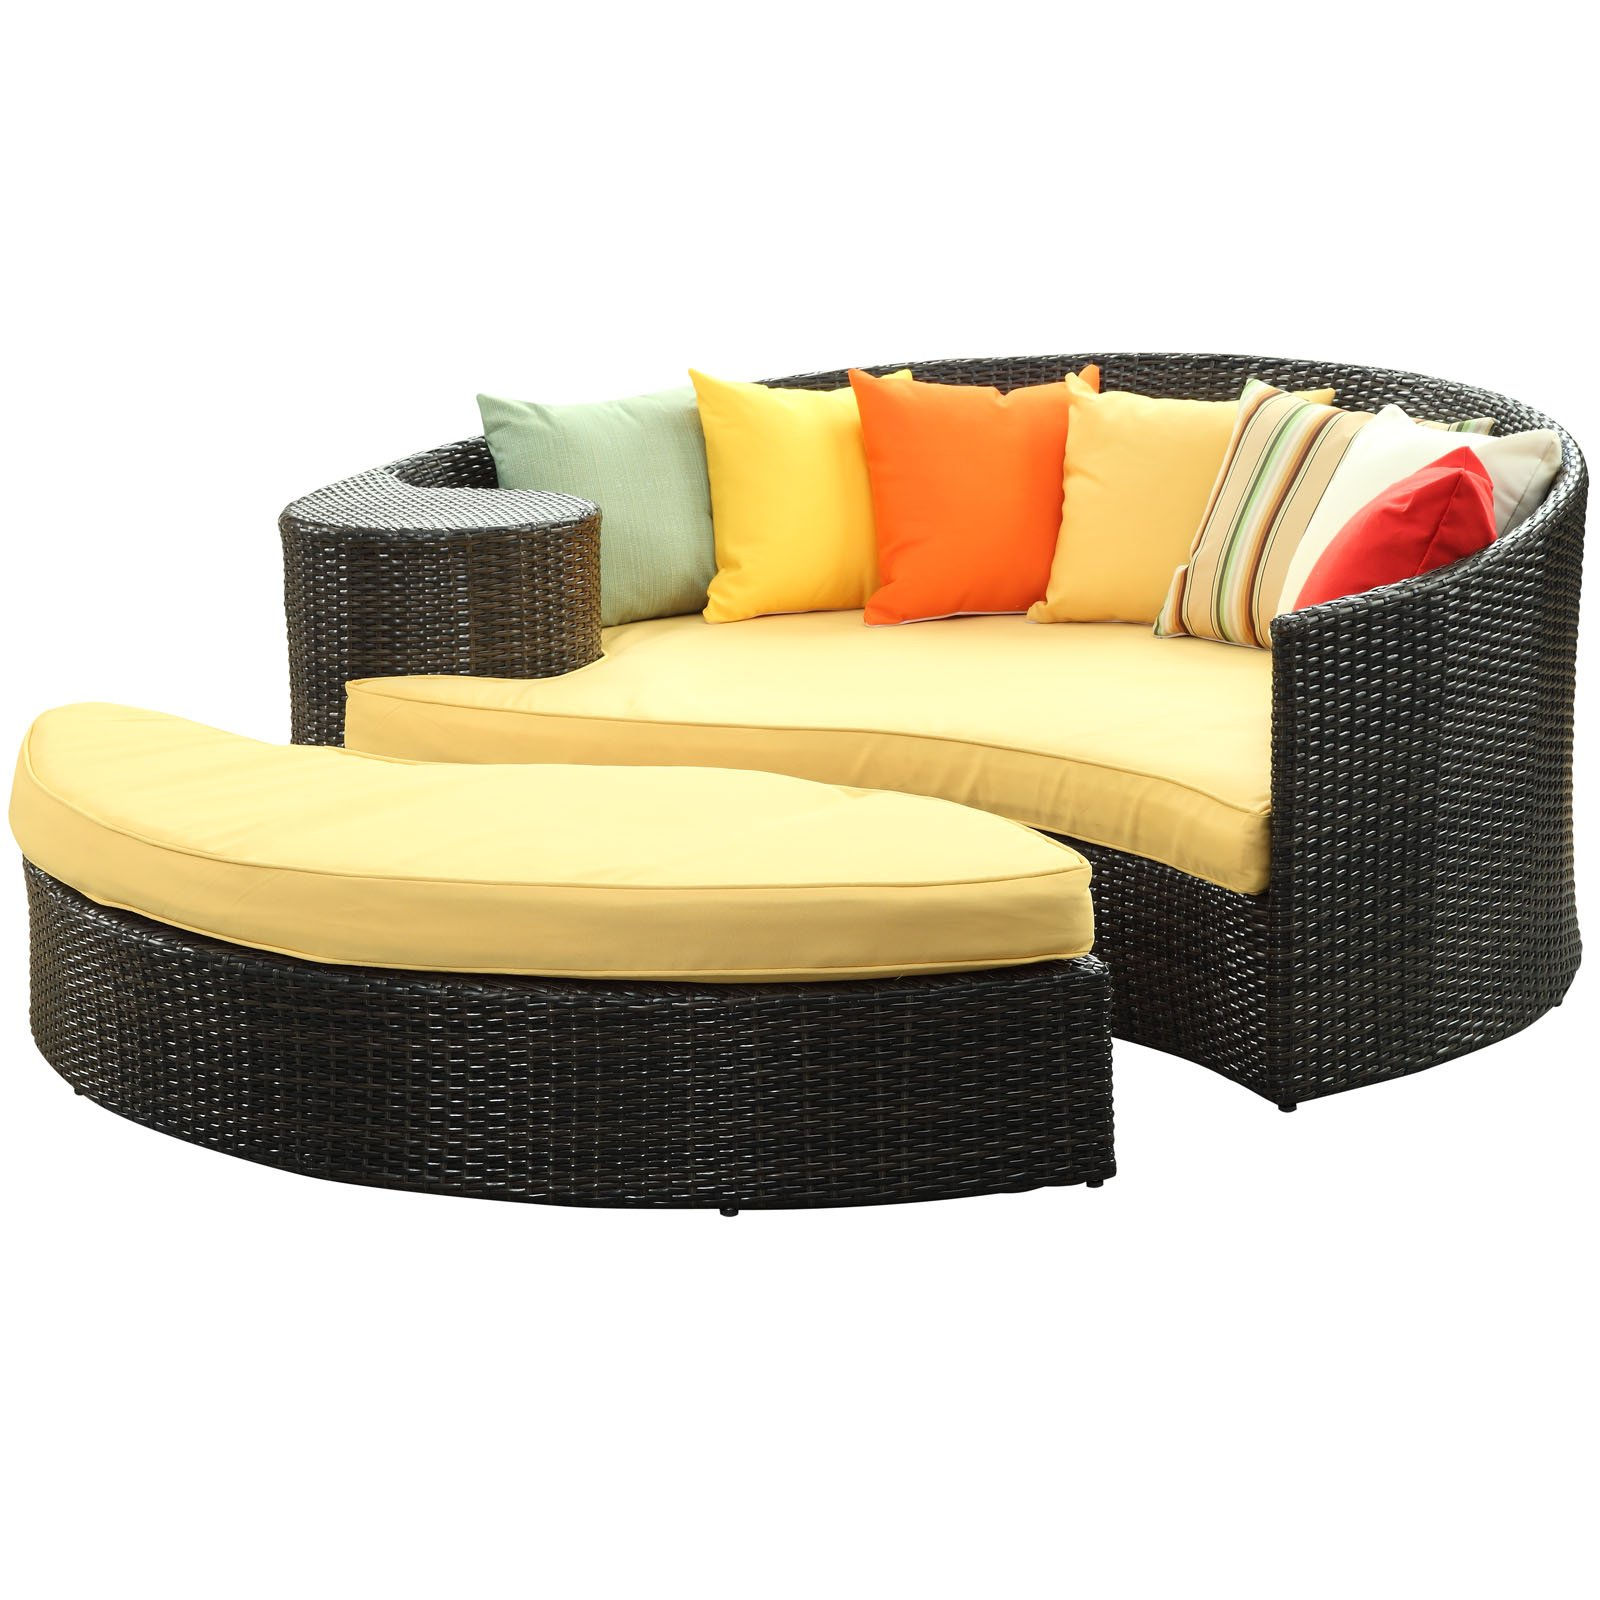 Modway Taiji Outdoor Wicker Patio Daybed with Ottoman in Brown with Orange Cushions